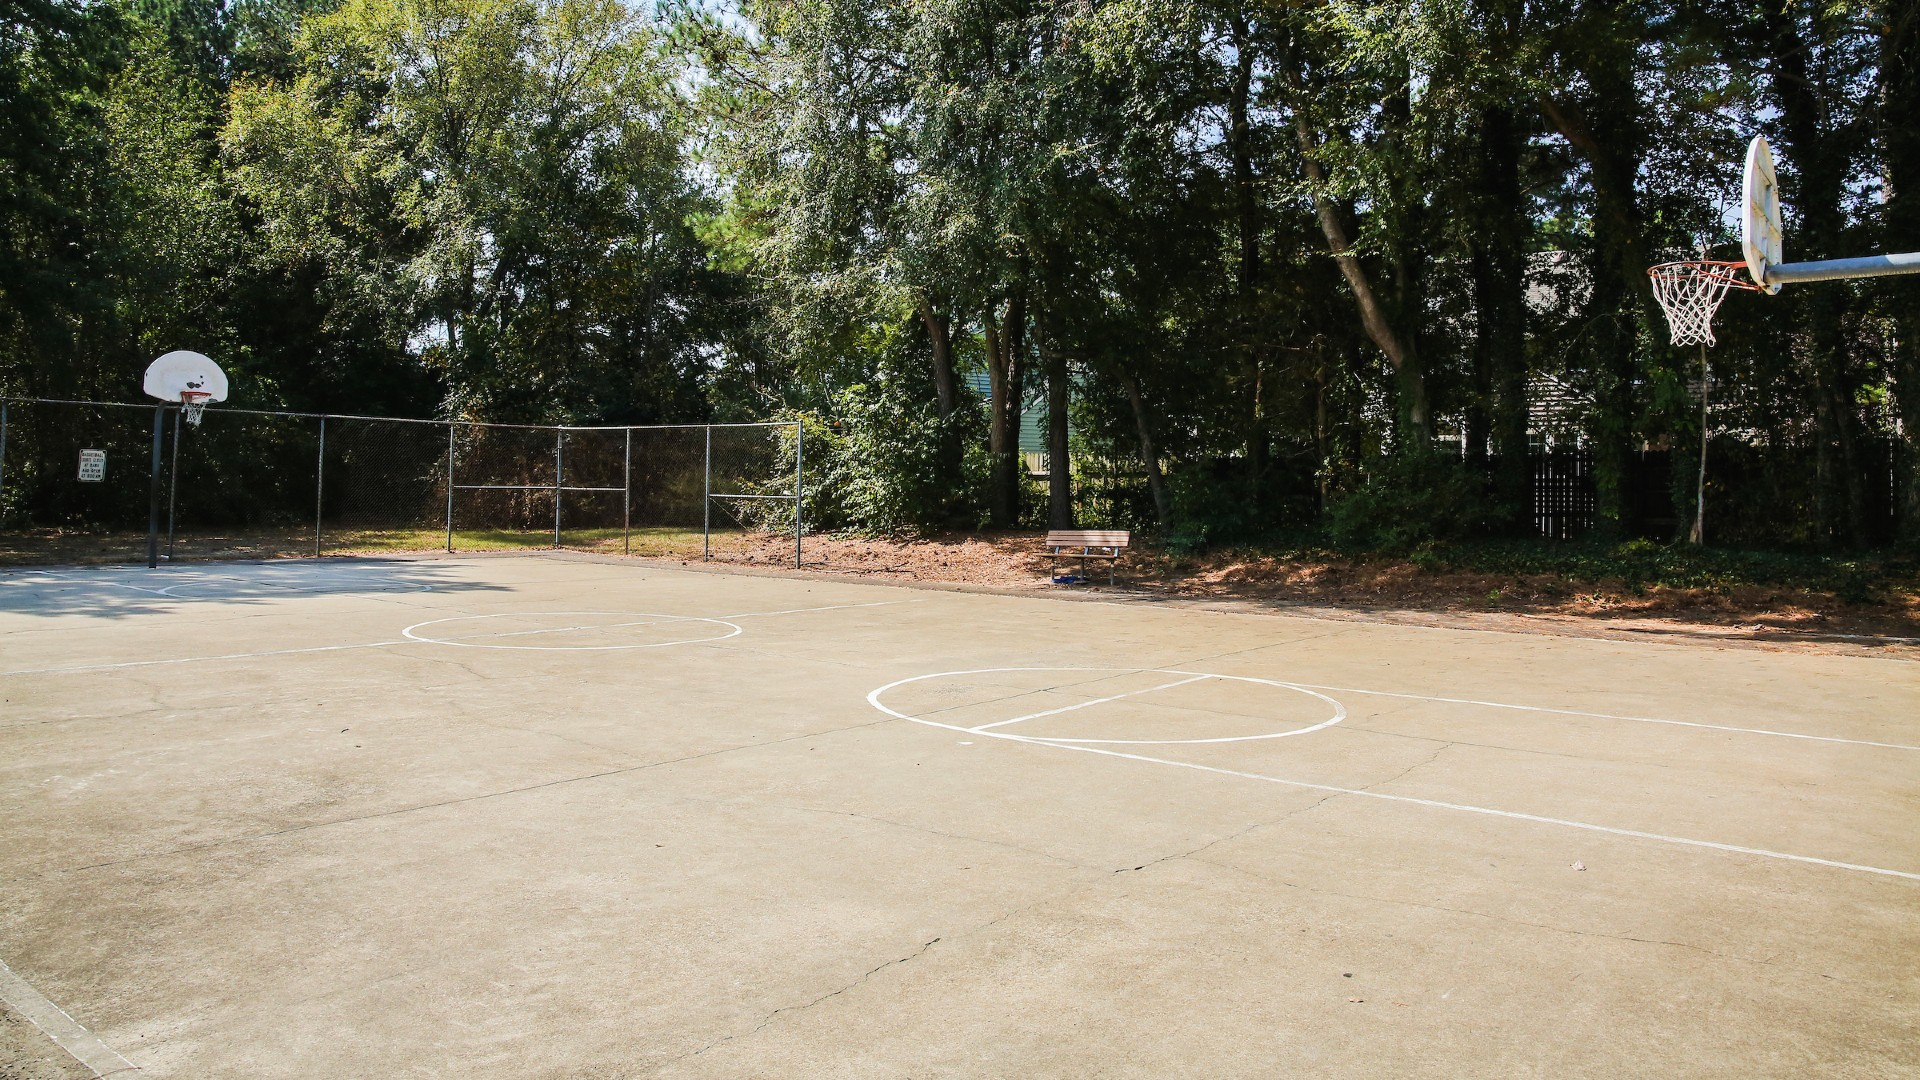 empty outdoor basketball court at millbrook park